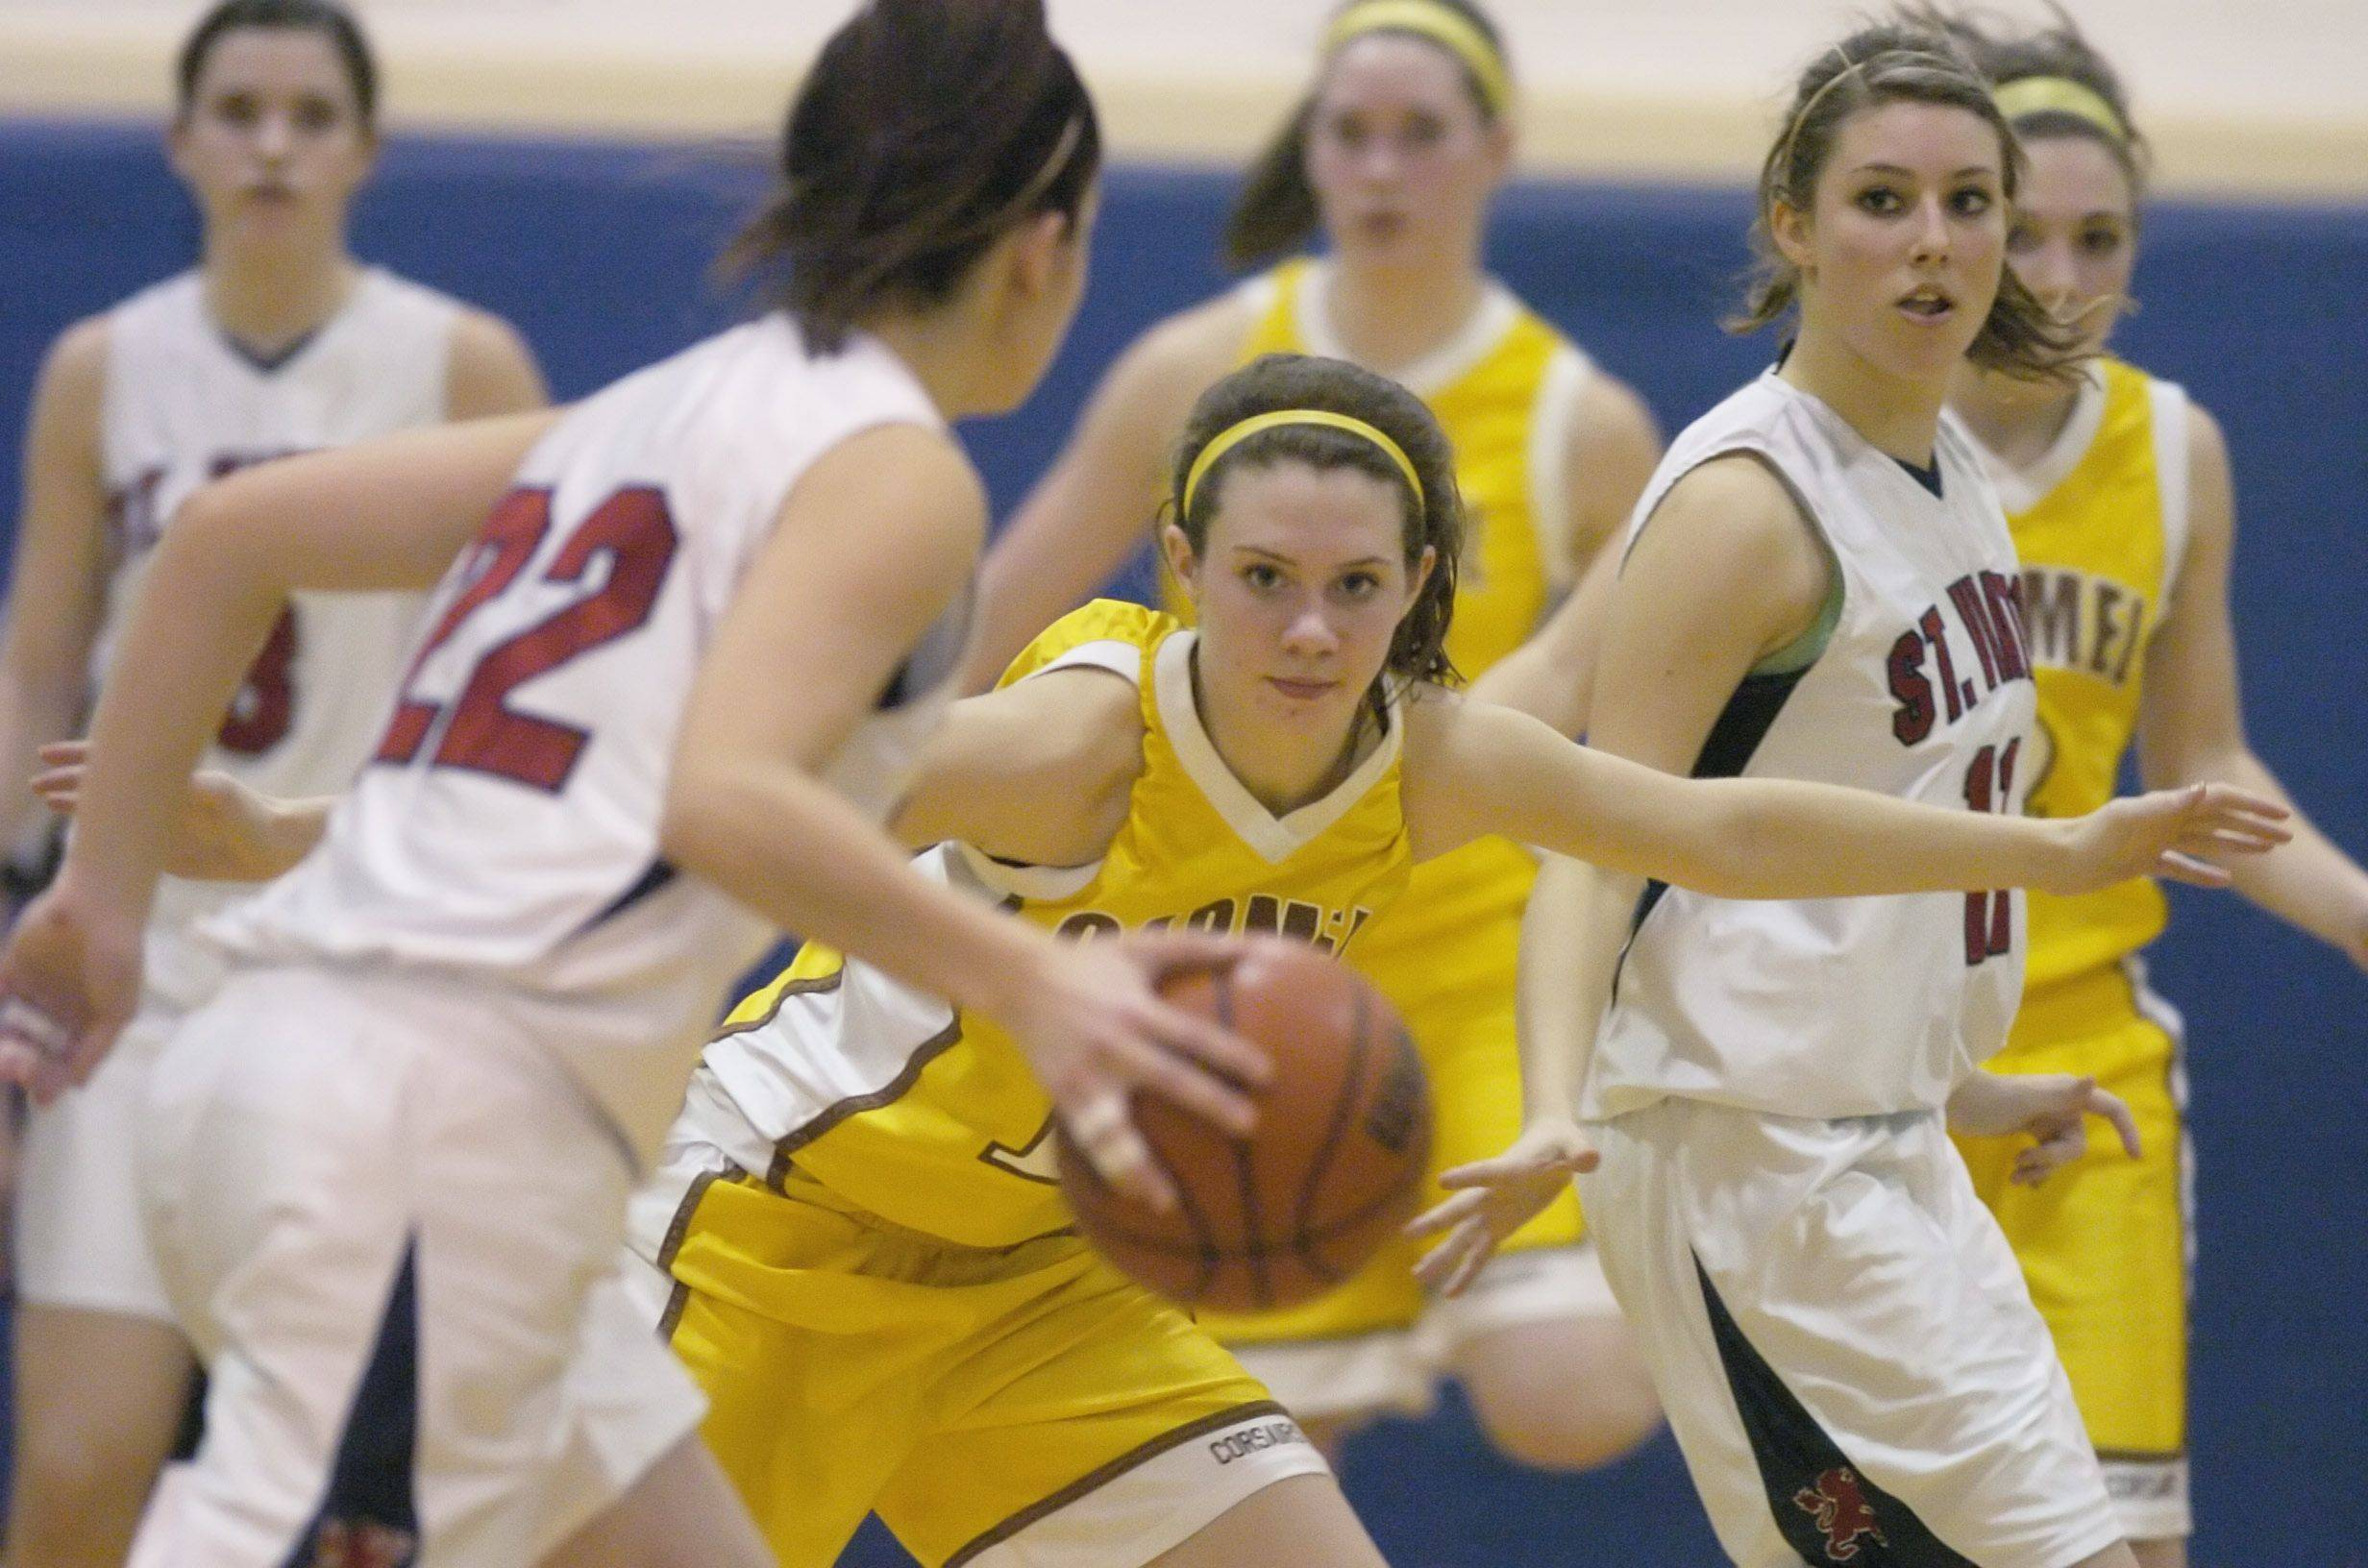 Images from the St. Viator vs. Carmel girls basketball game in Arlington Heights on Wednesday, January 19th.